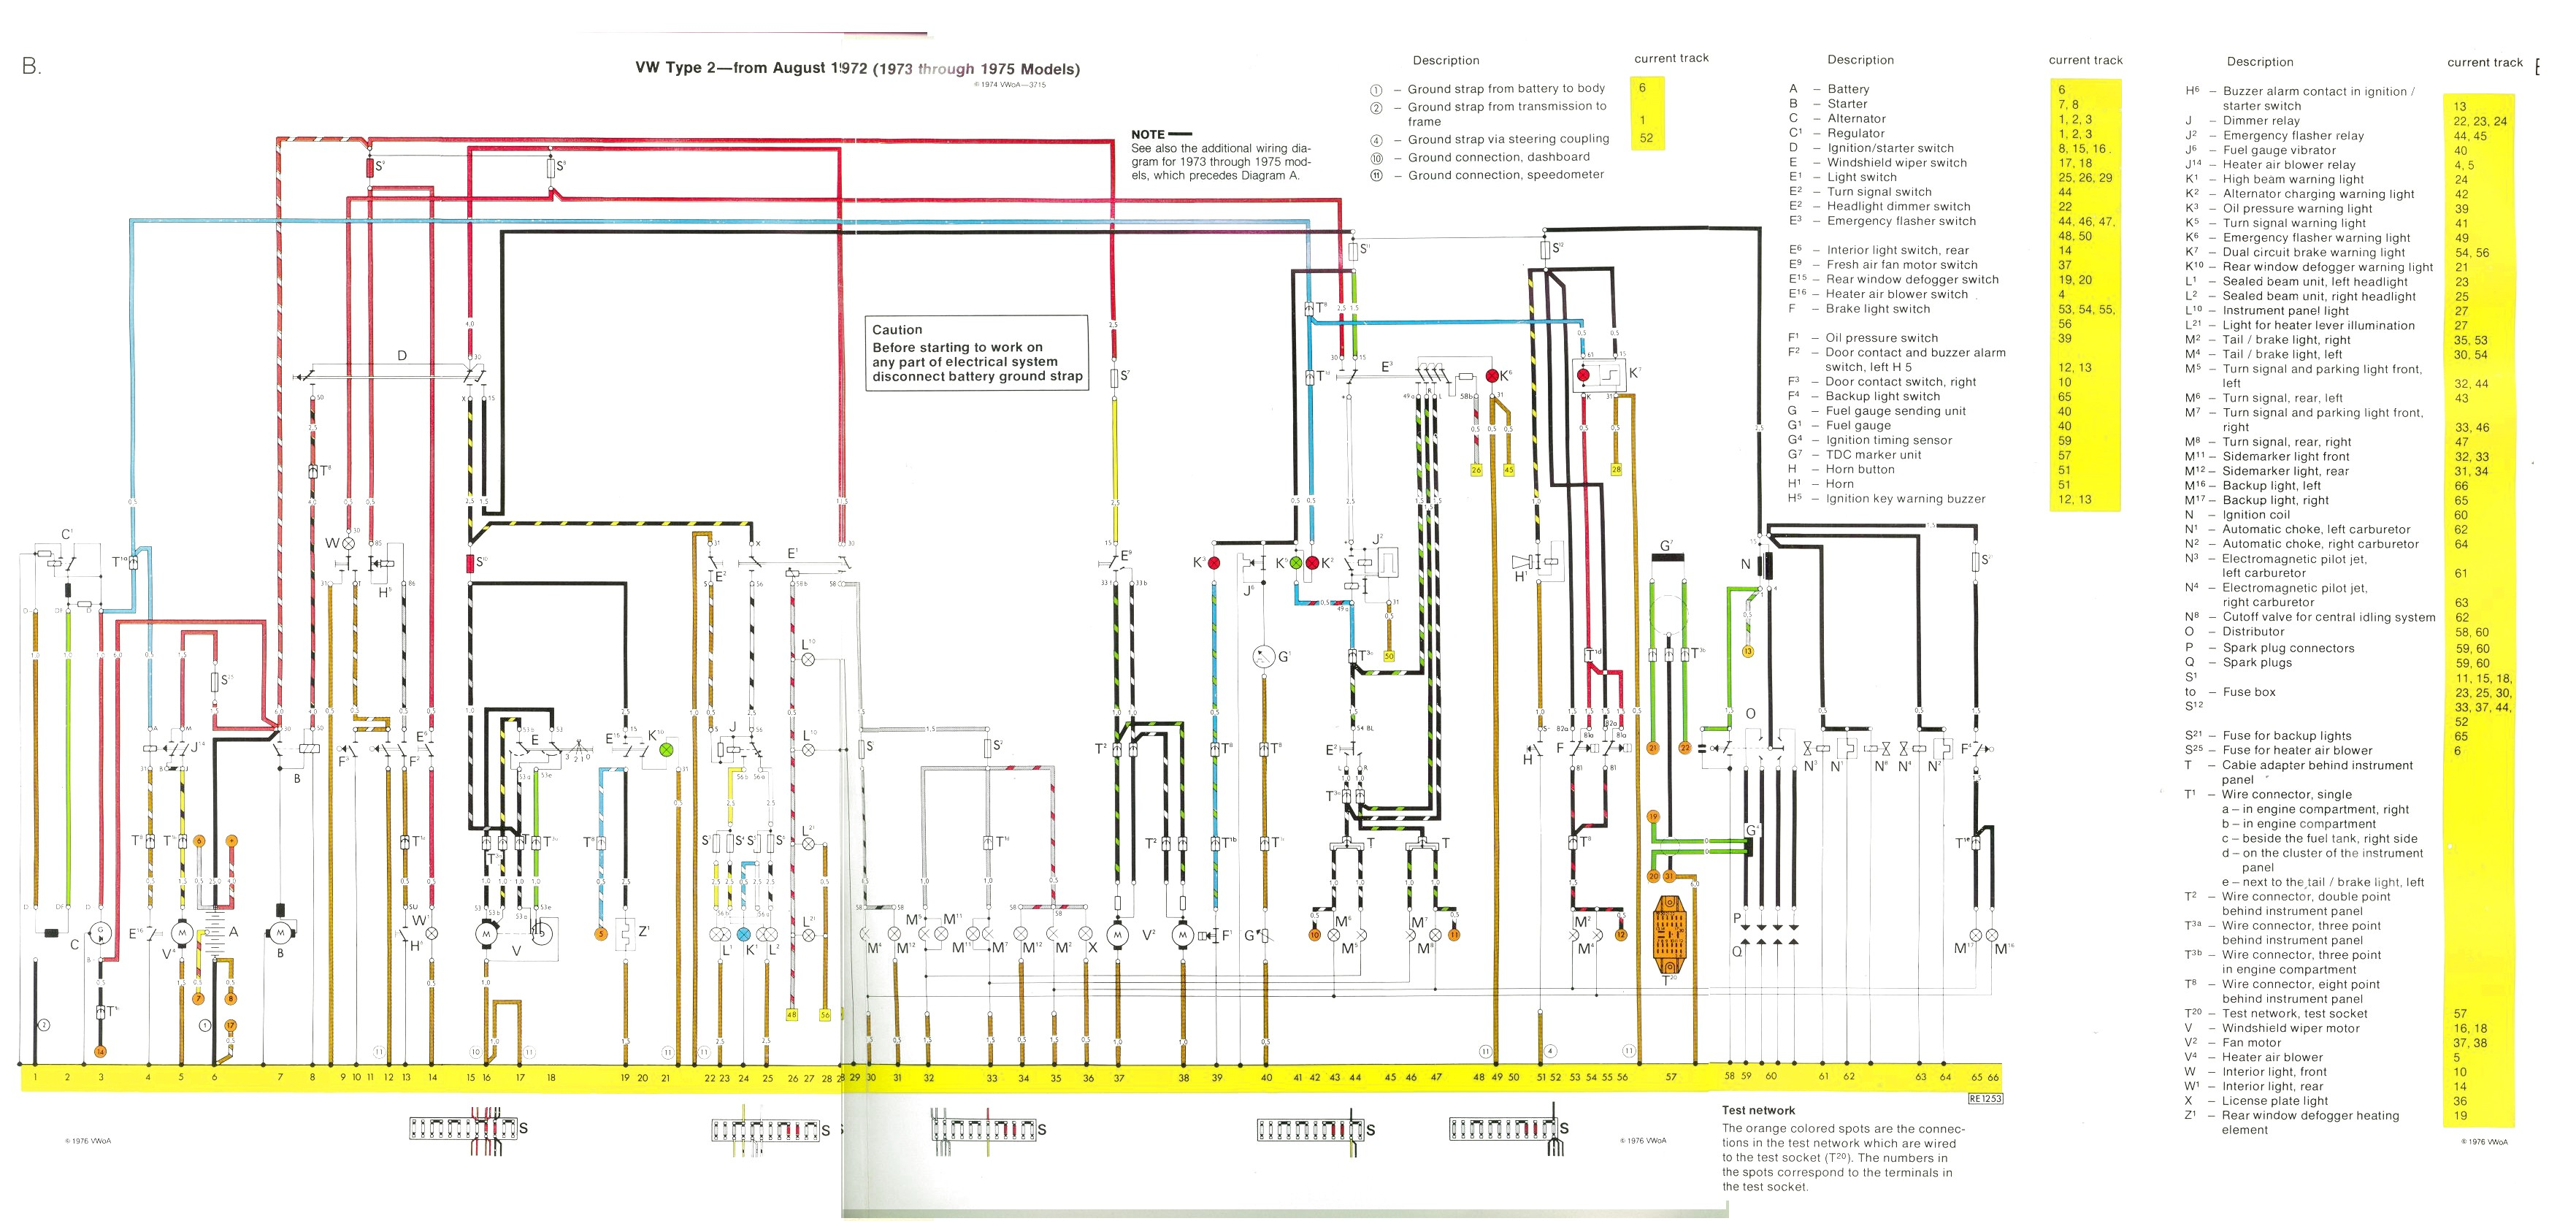 bus 73 75 vintagebus com vw bus (and other) wiring diagrams 1973 Super Beetle Wiring Diagram at crackthecode.co